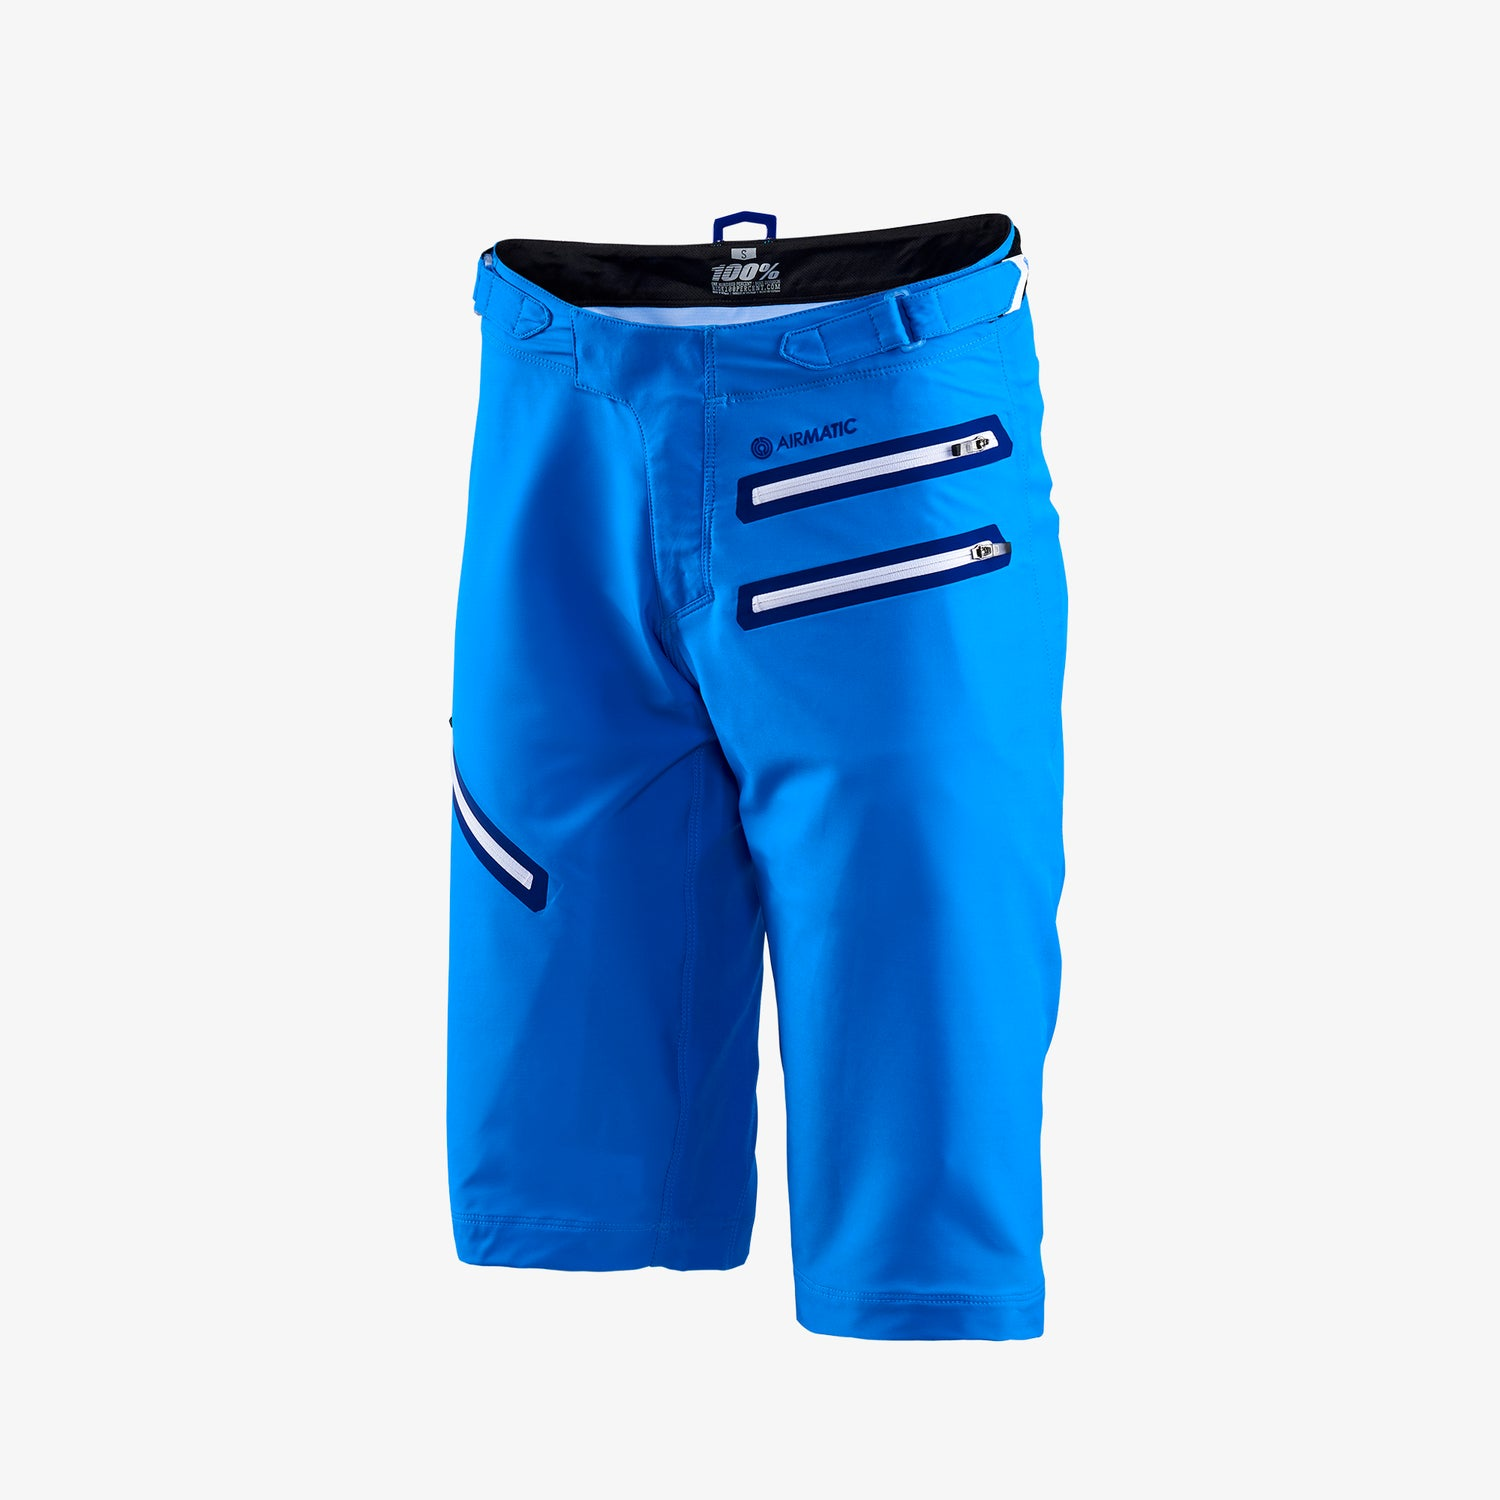 AIRMATIC Short - Women's - Blue